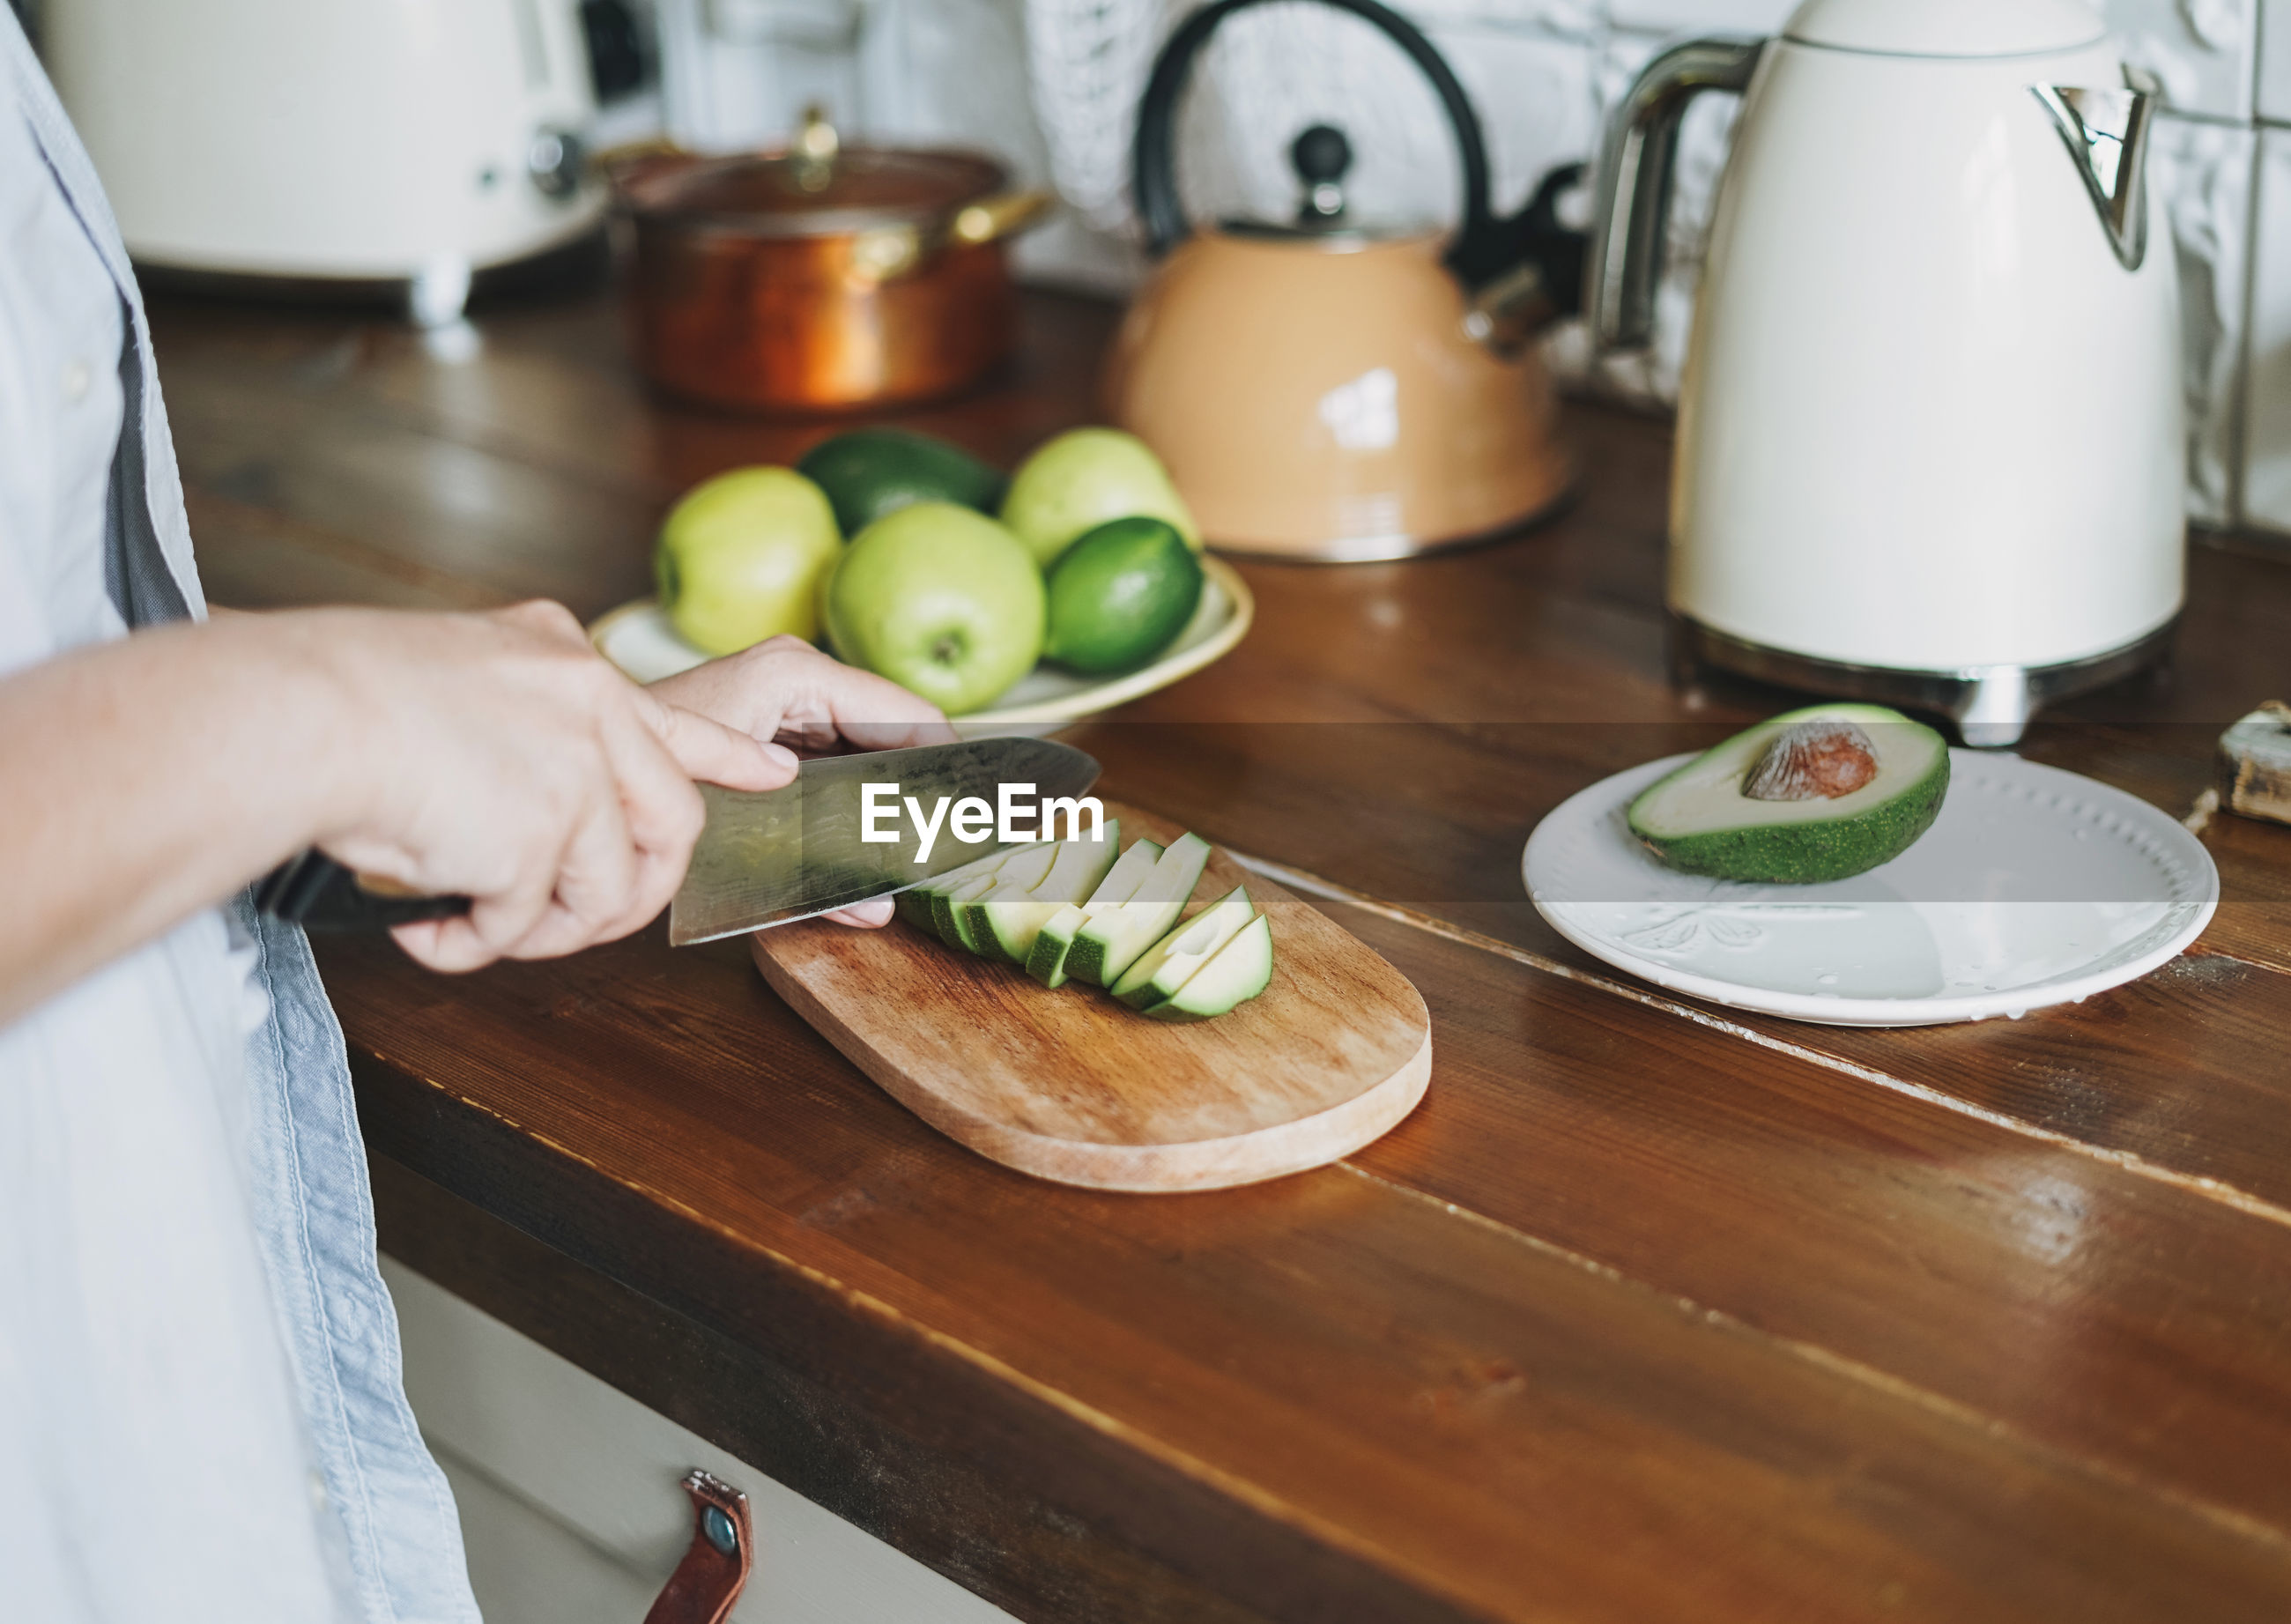 MIDSECTION OF PERSON PREPARING FOOD AT HOME